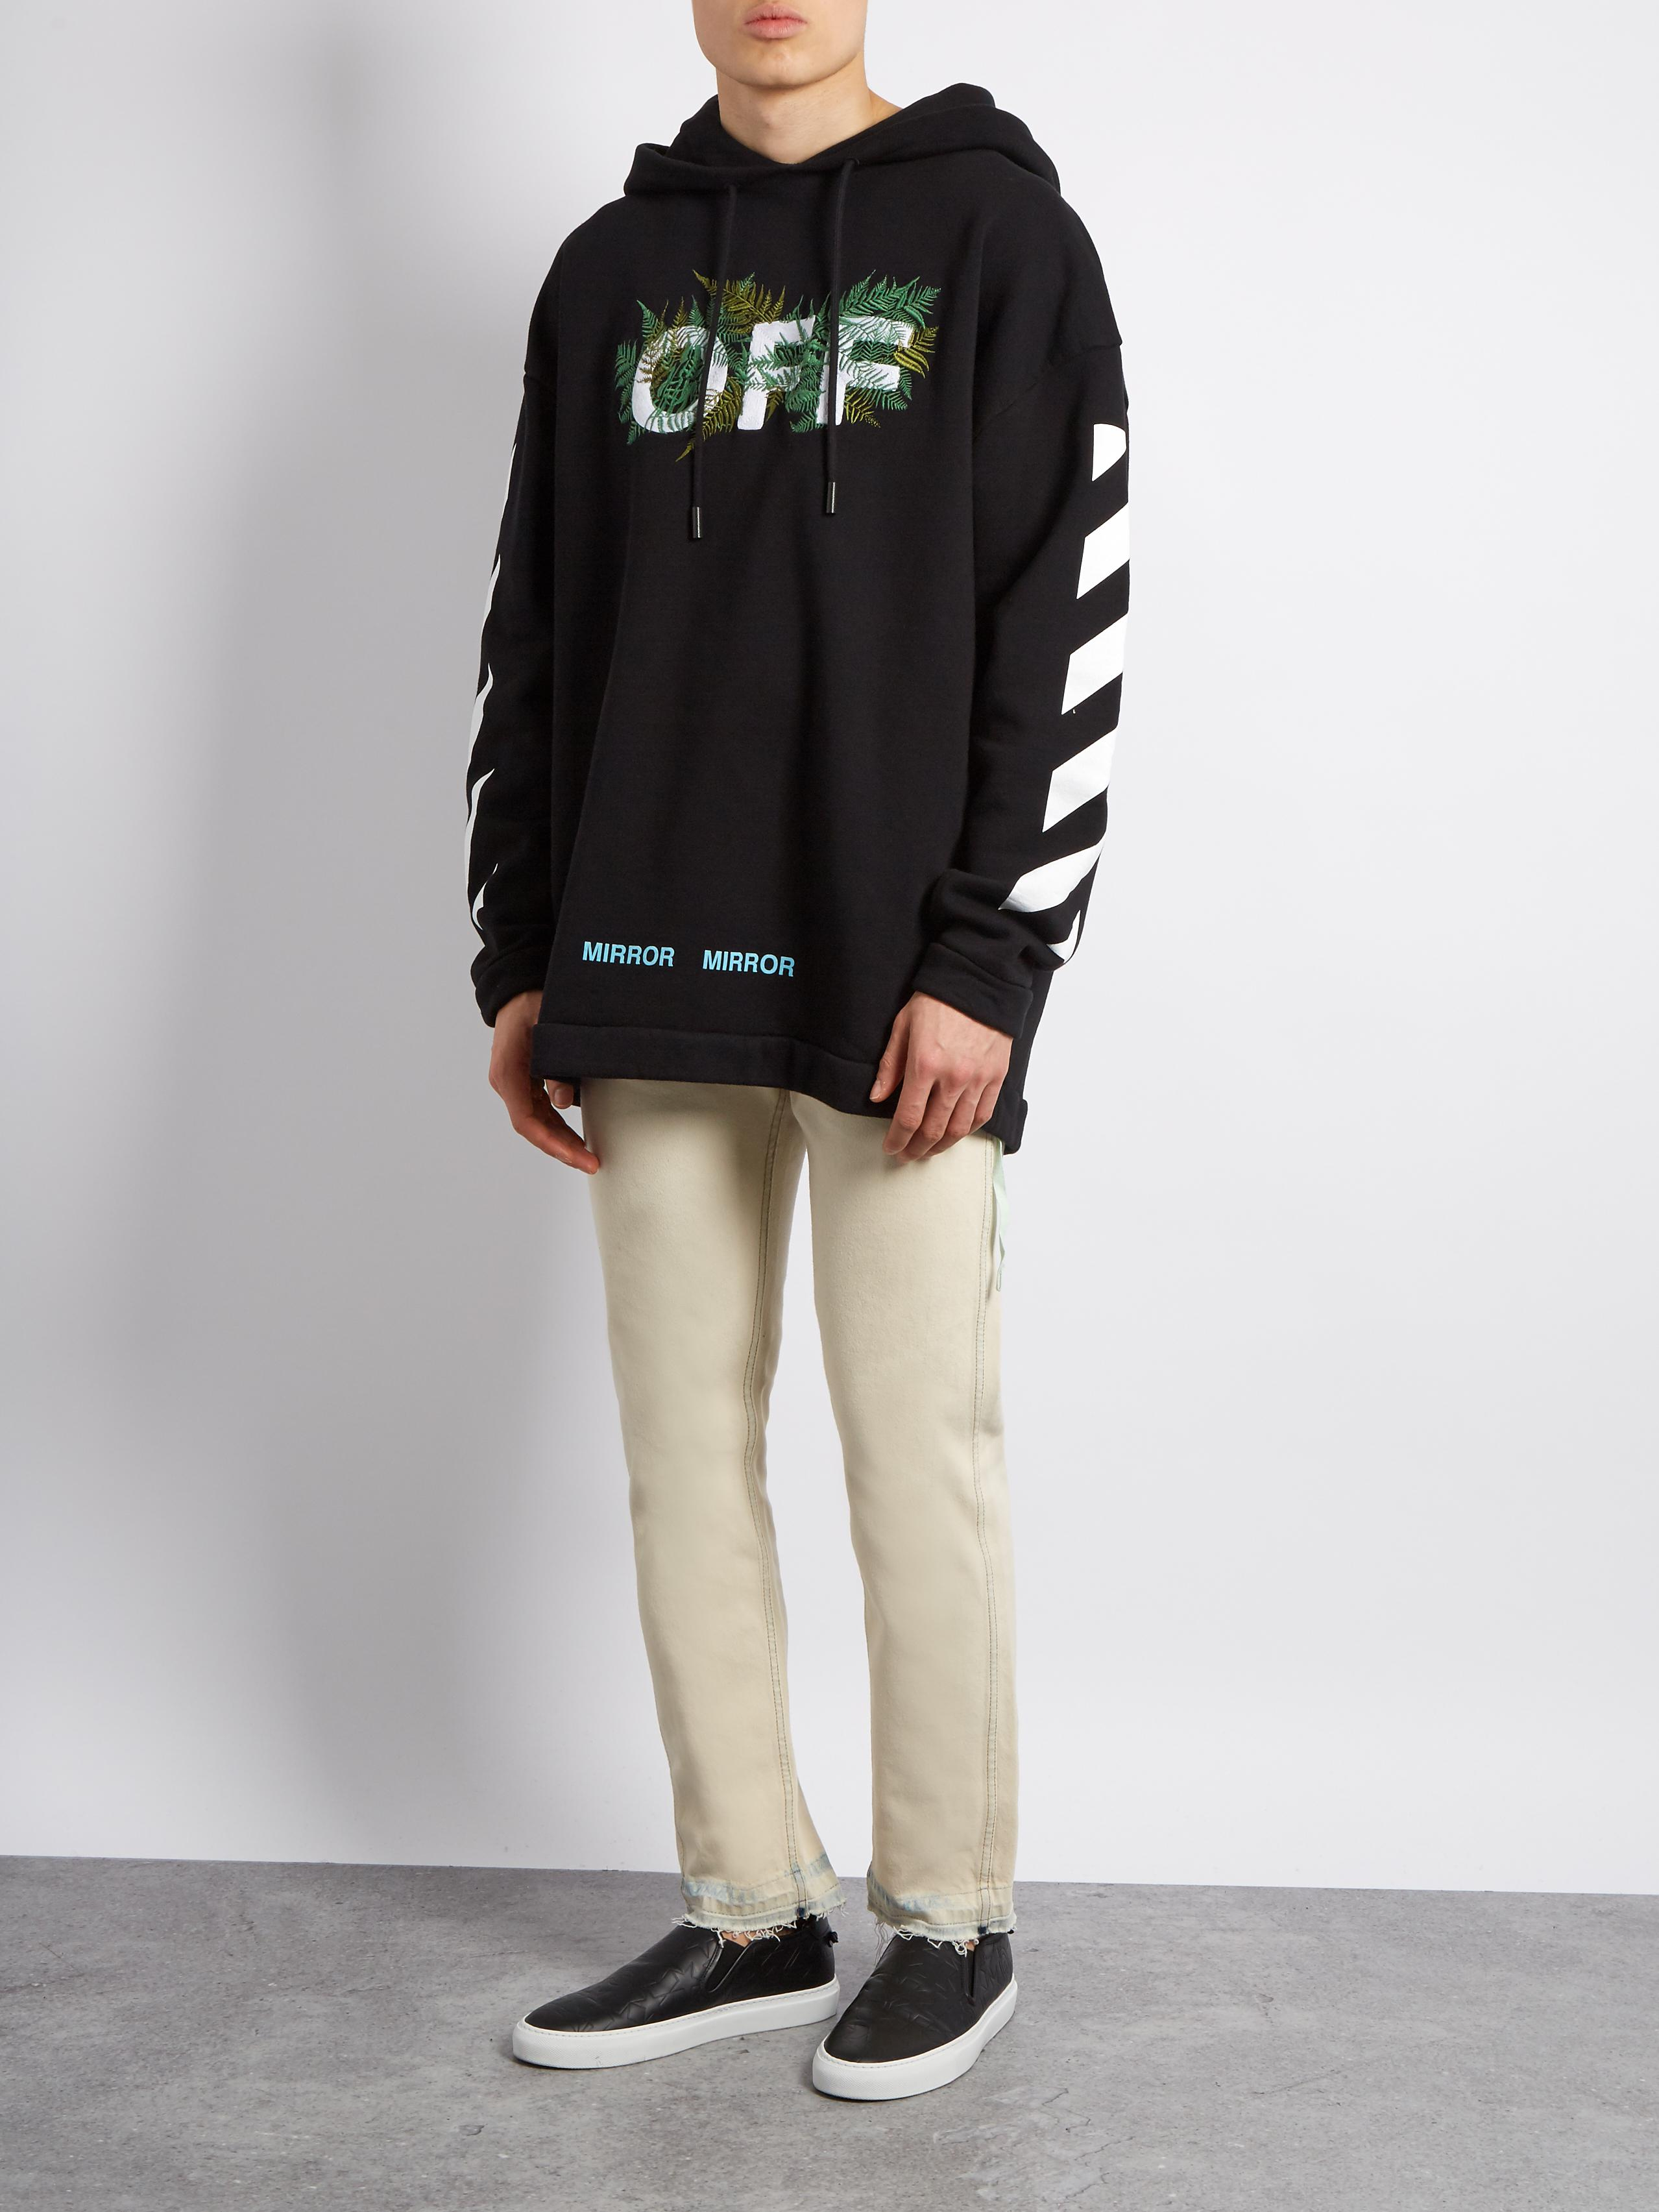 Off White C O Virgil Abloh Hooded Fern Embroidered Cotton